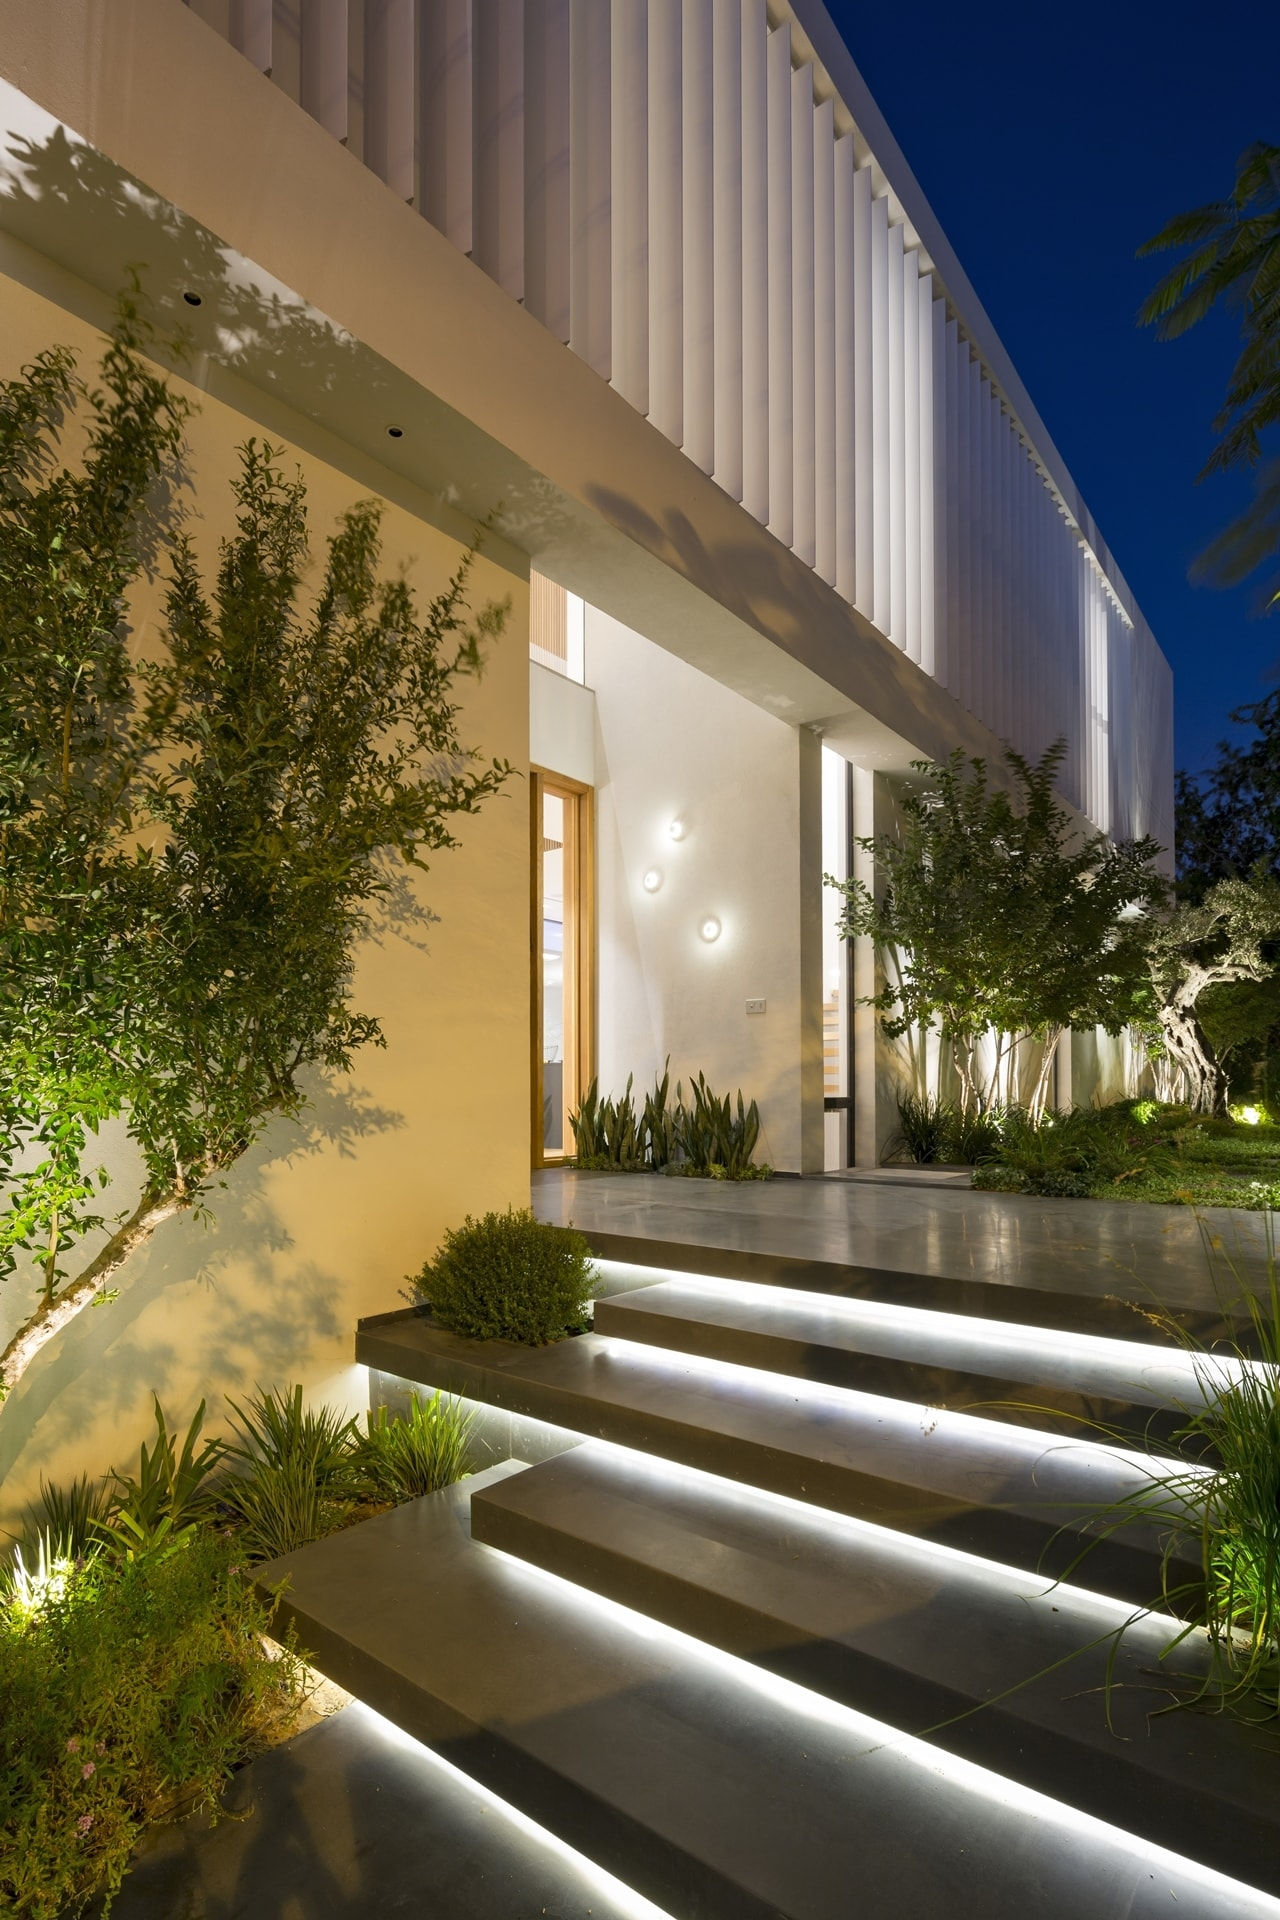 The Best Exterior House Design Ideas Architecture Beast | Outside Entrance Stairs Design | Landscaping | Front Yard Stair | Cool | Upstairs | Simple